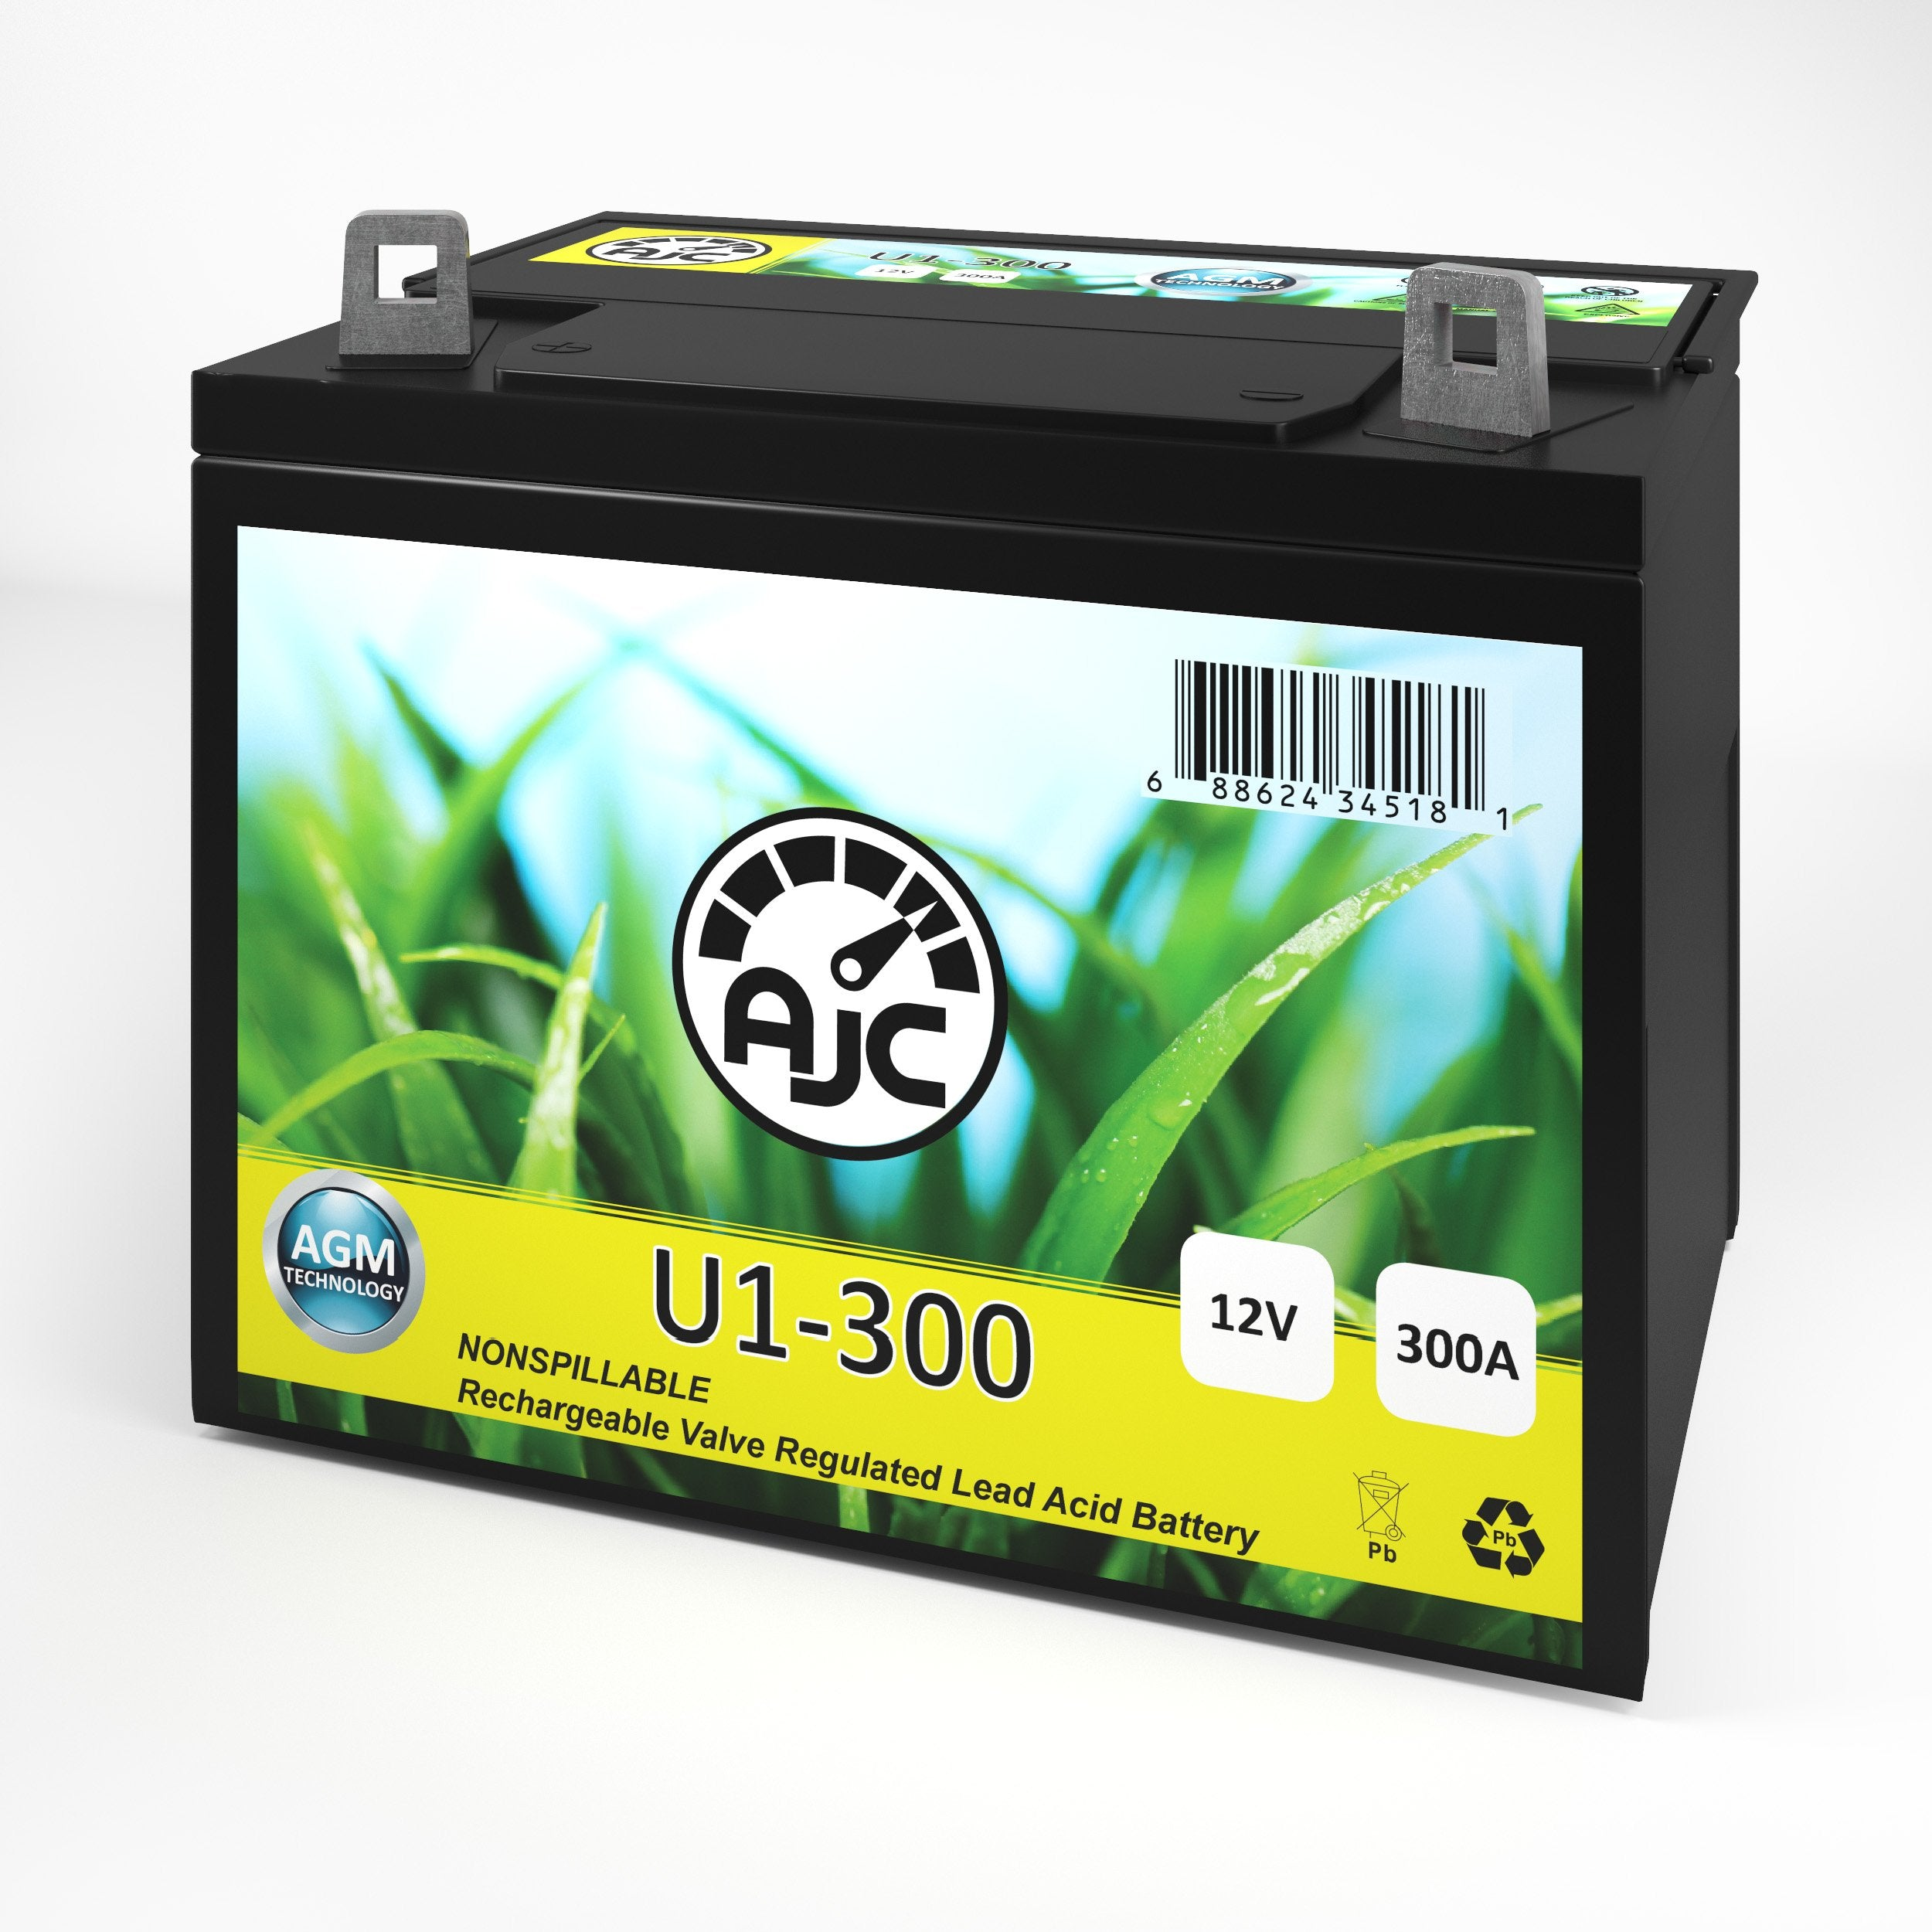 John Deere X729 U1 Lawn Mower and Tractor Replacement Battery